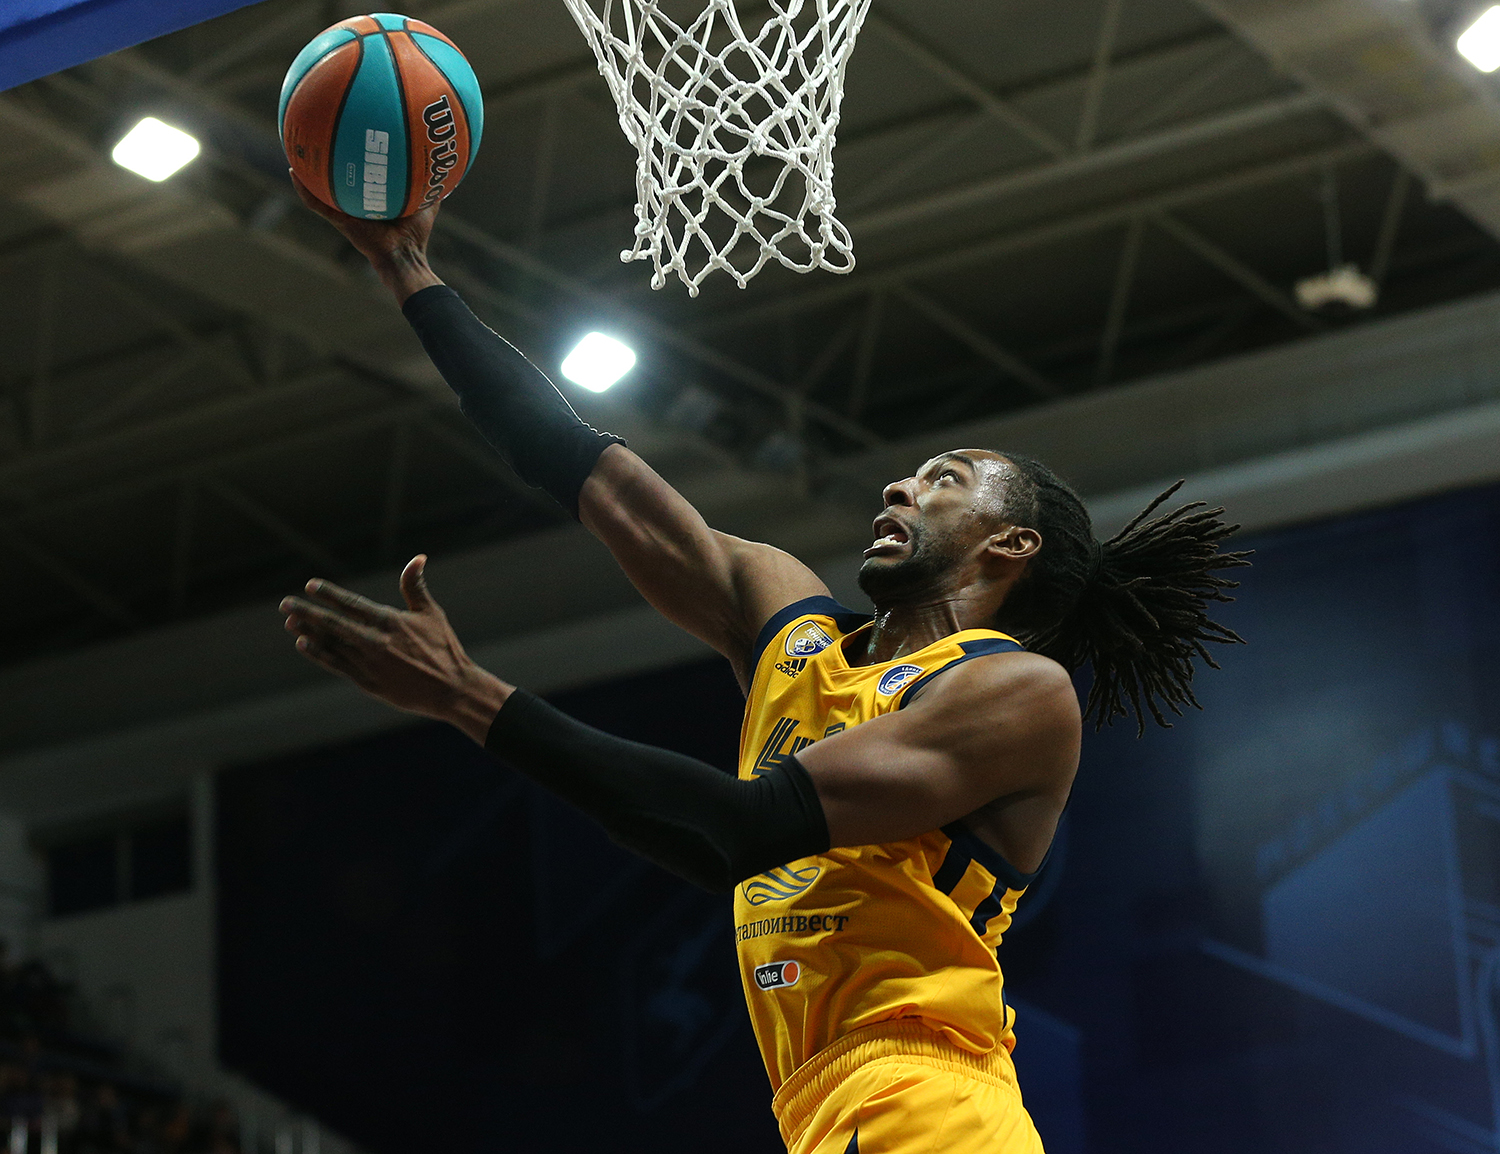 Khimki withstand in shootout with Enisey